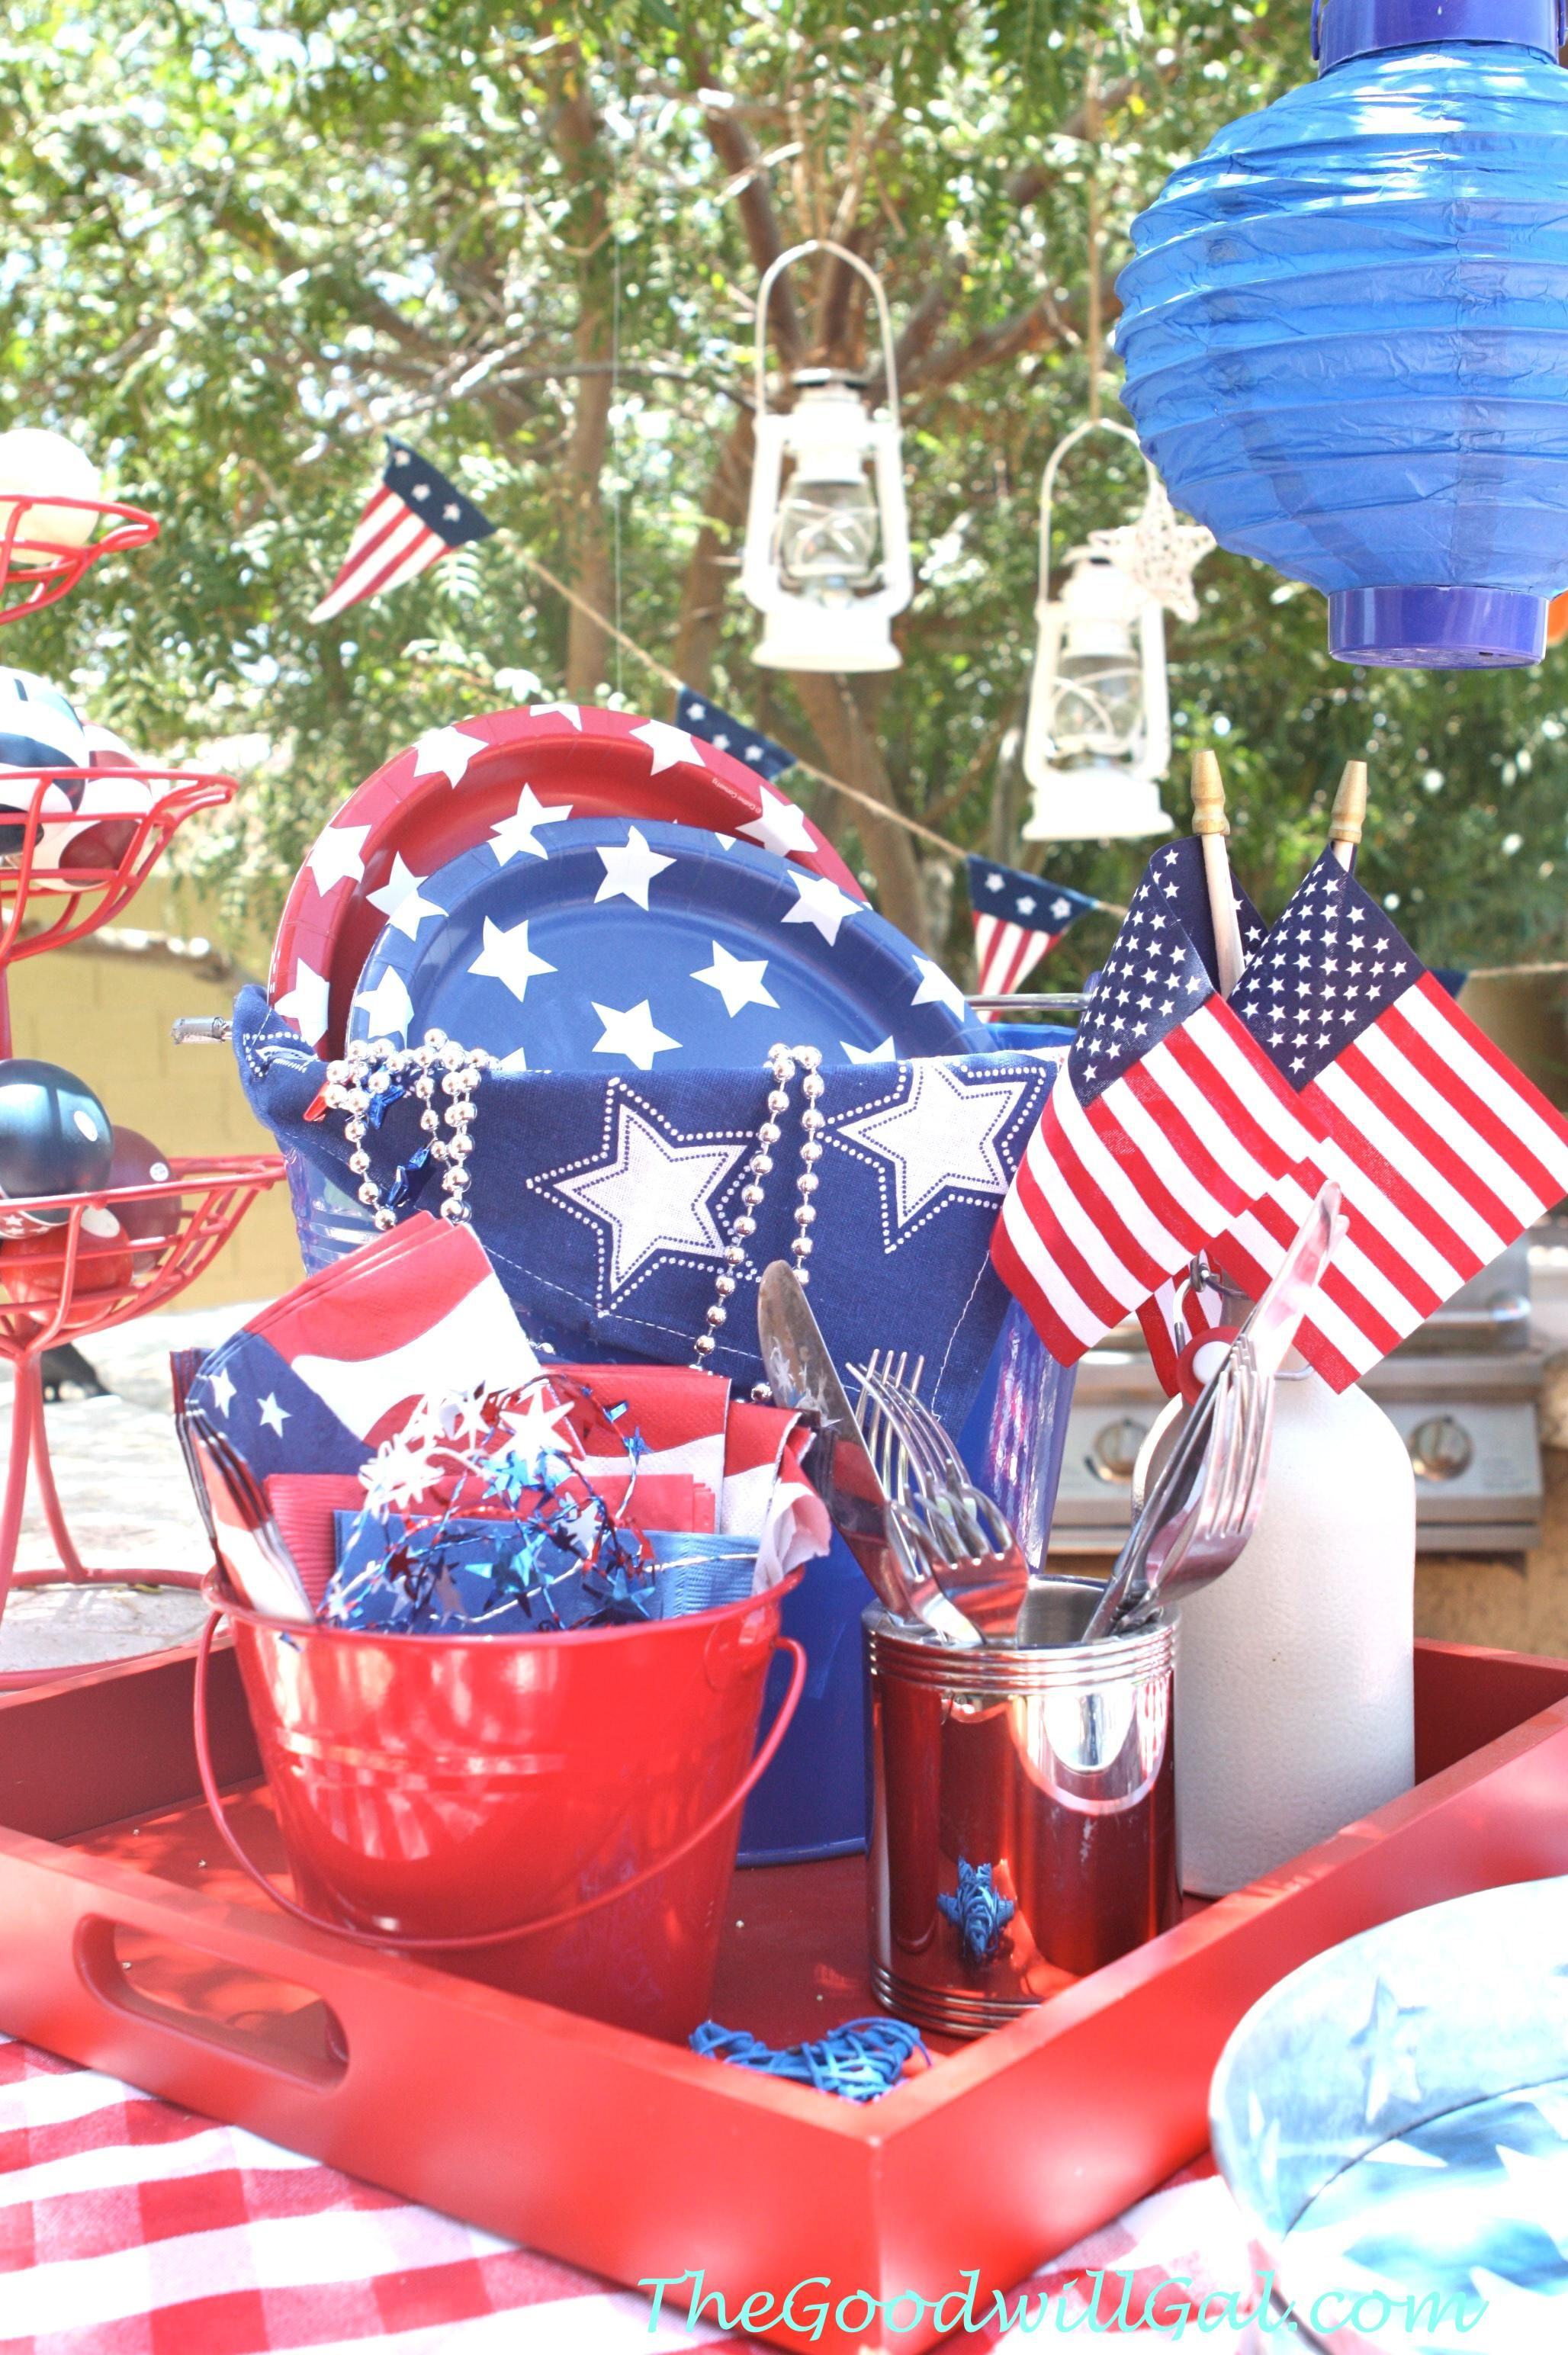 Get Ready For A 4th Of July Party At Goodwill Everything Here Is From